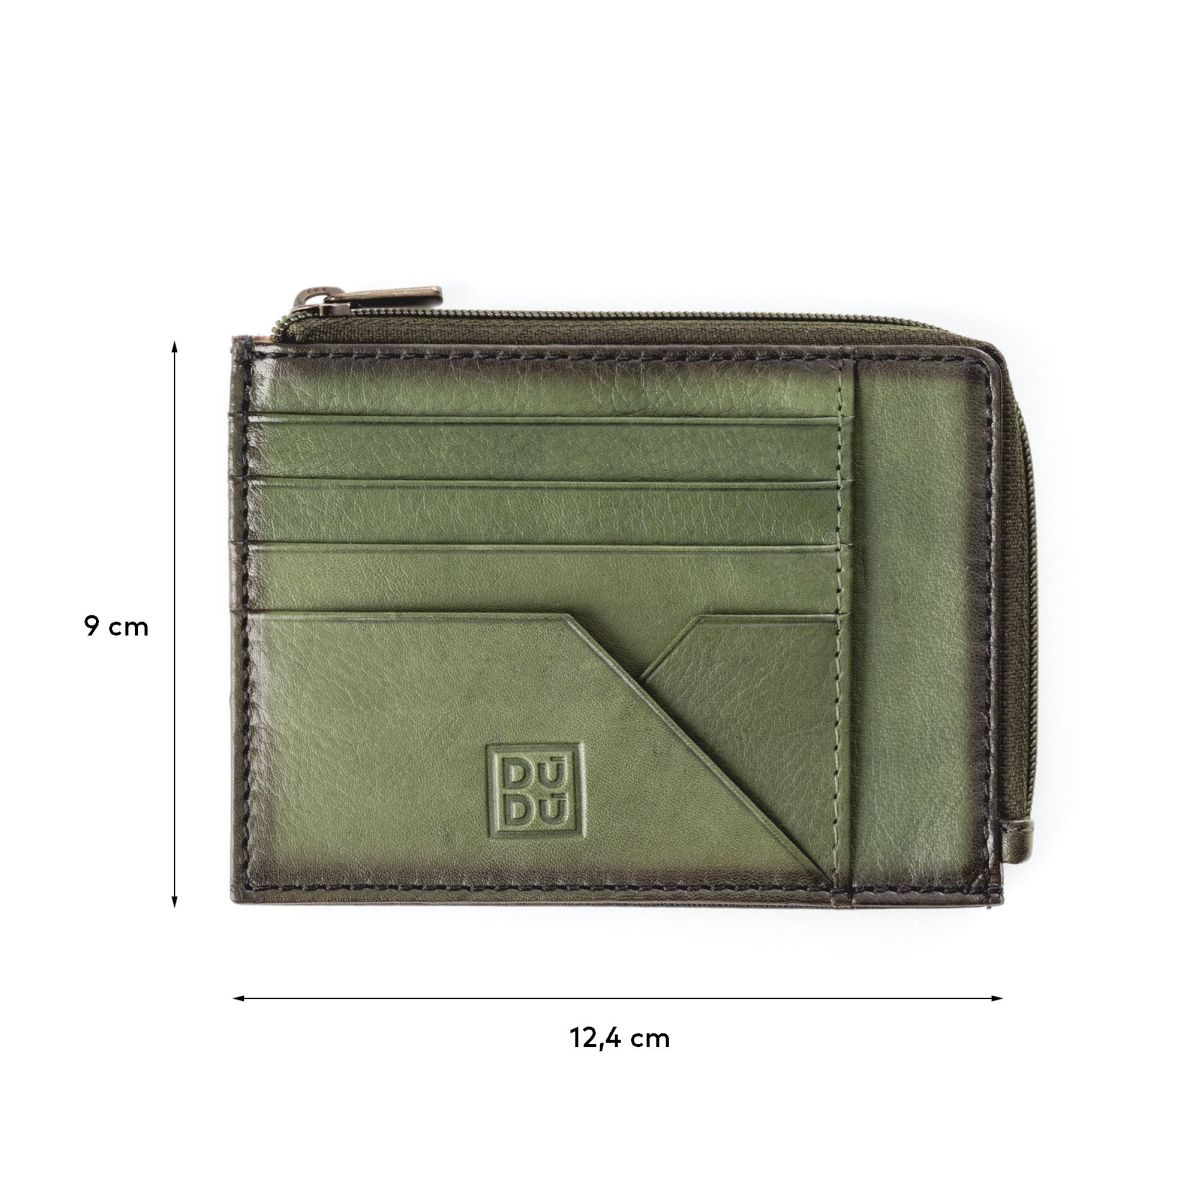 DuDu Flat Leather Wallet - Green